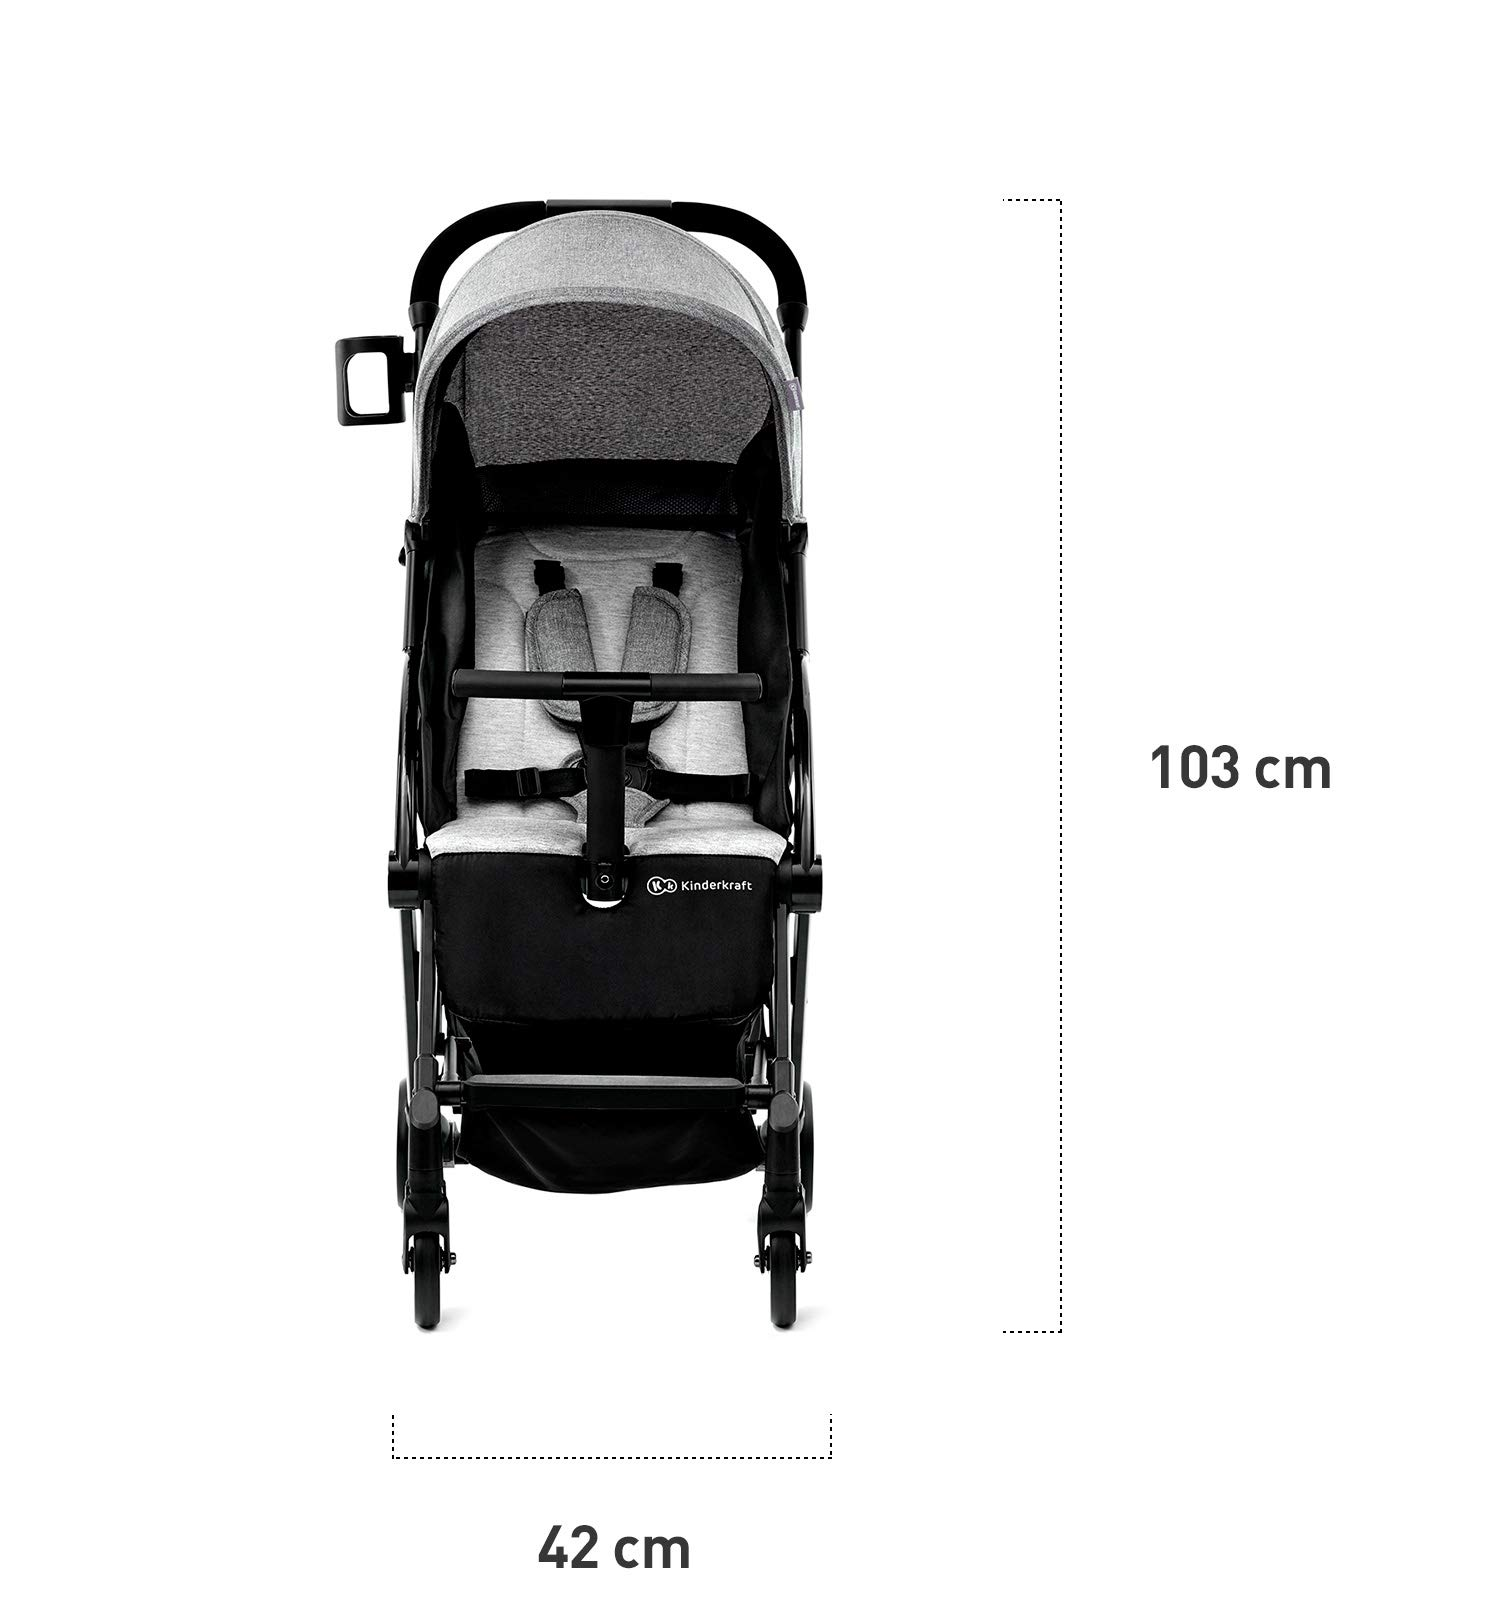 Kinderkraft Stroller PILOT Lightweight 5.8kg Compact Folded Pushchair Pram Buggy with Adjustable Footrest | Accessories Rain and Foot Cover from Birth to 3.5 Years (0-15kg) kk KinderKraft Mechanism for easy folding with one hand After folding, the stroller resembles a briefcase You do not have to stop and move around the stroller to make eye contact with the child 7